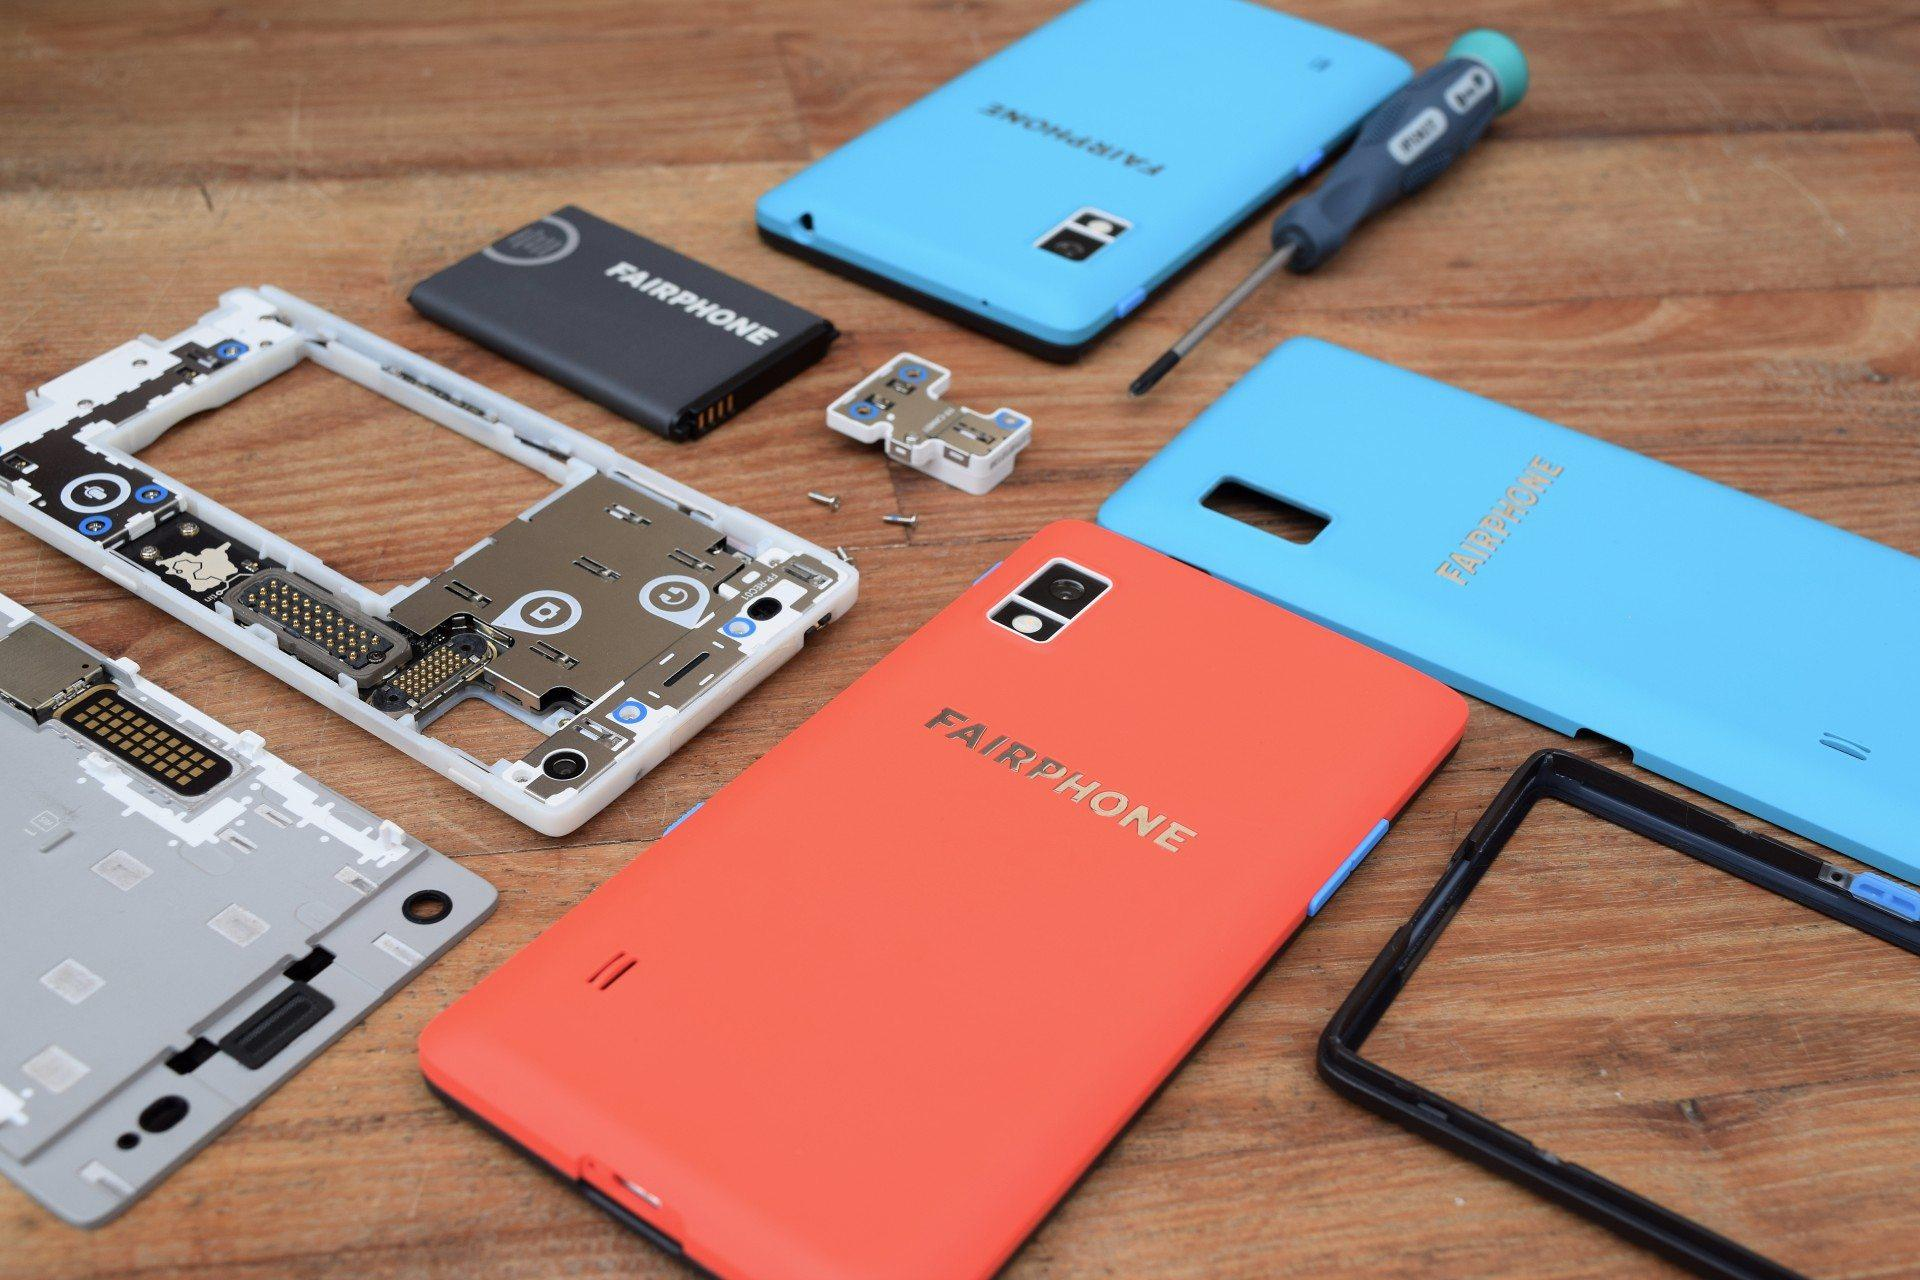 Fairphone onderdelen